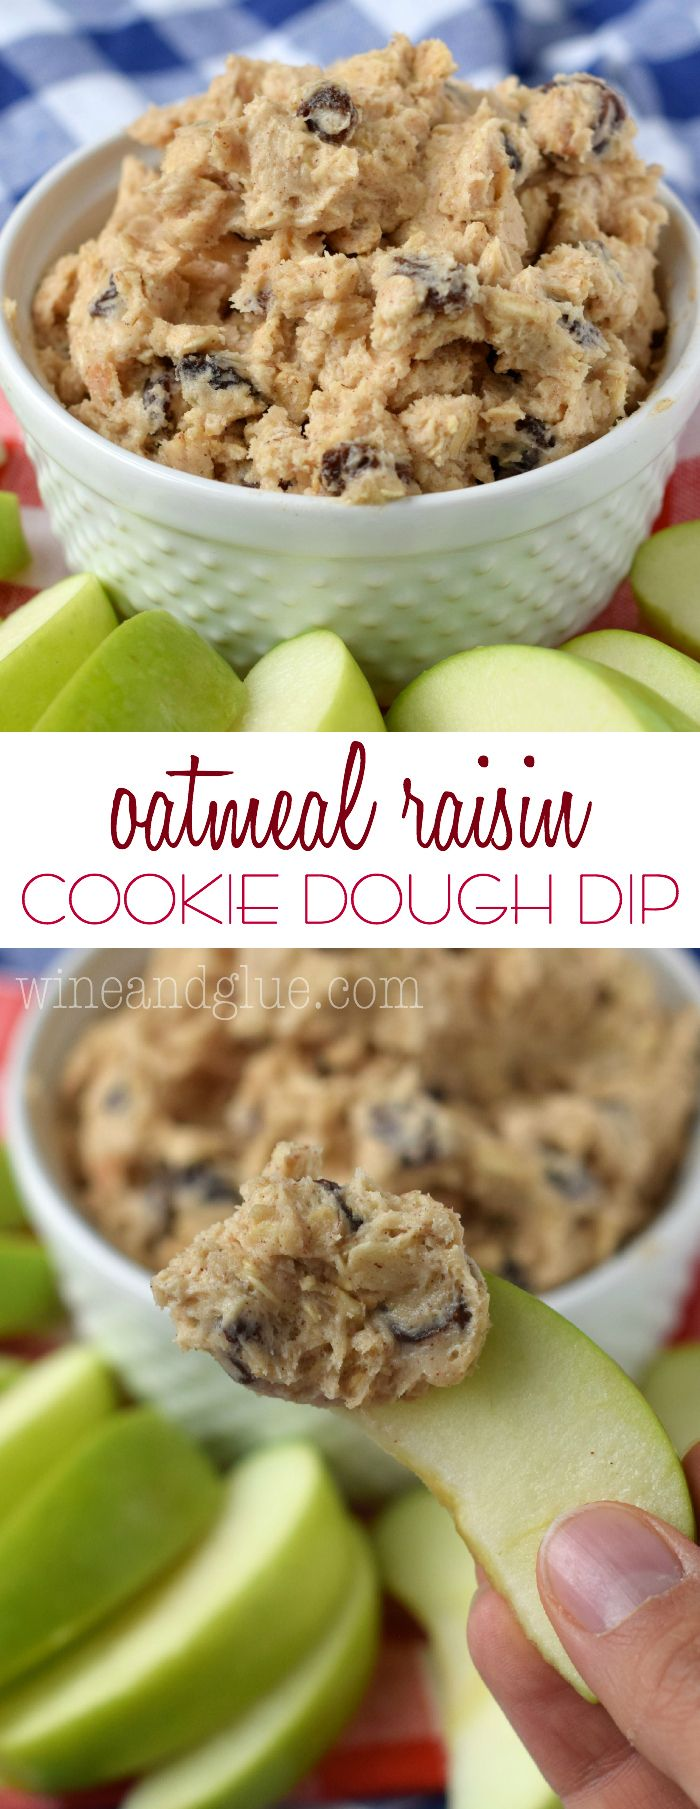 This Oatmeal Raisin Cookie Dough Dip is so simple to whip together, that it will quickly become your new favorite sweet dip for parties! Serve it with green apples and graham crackers.